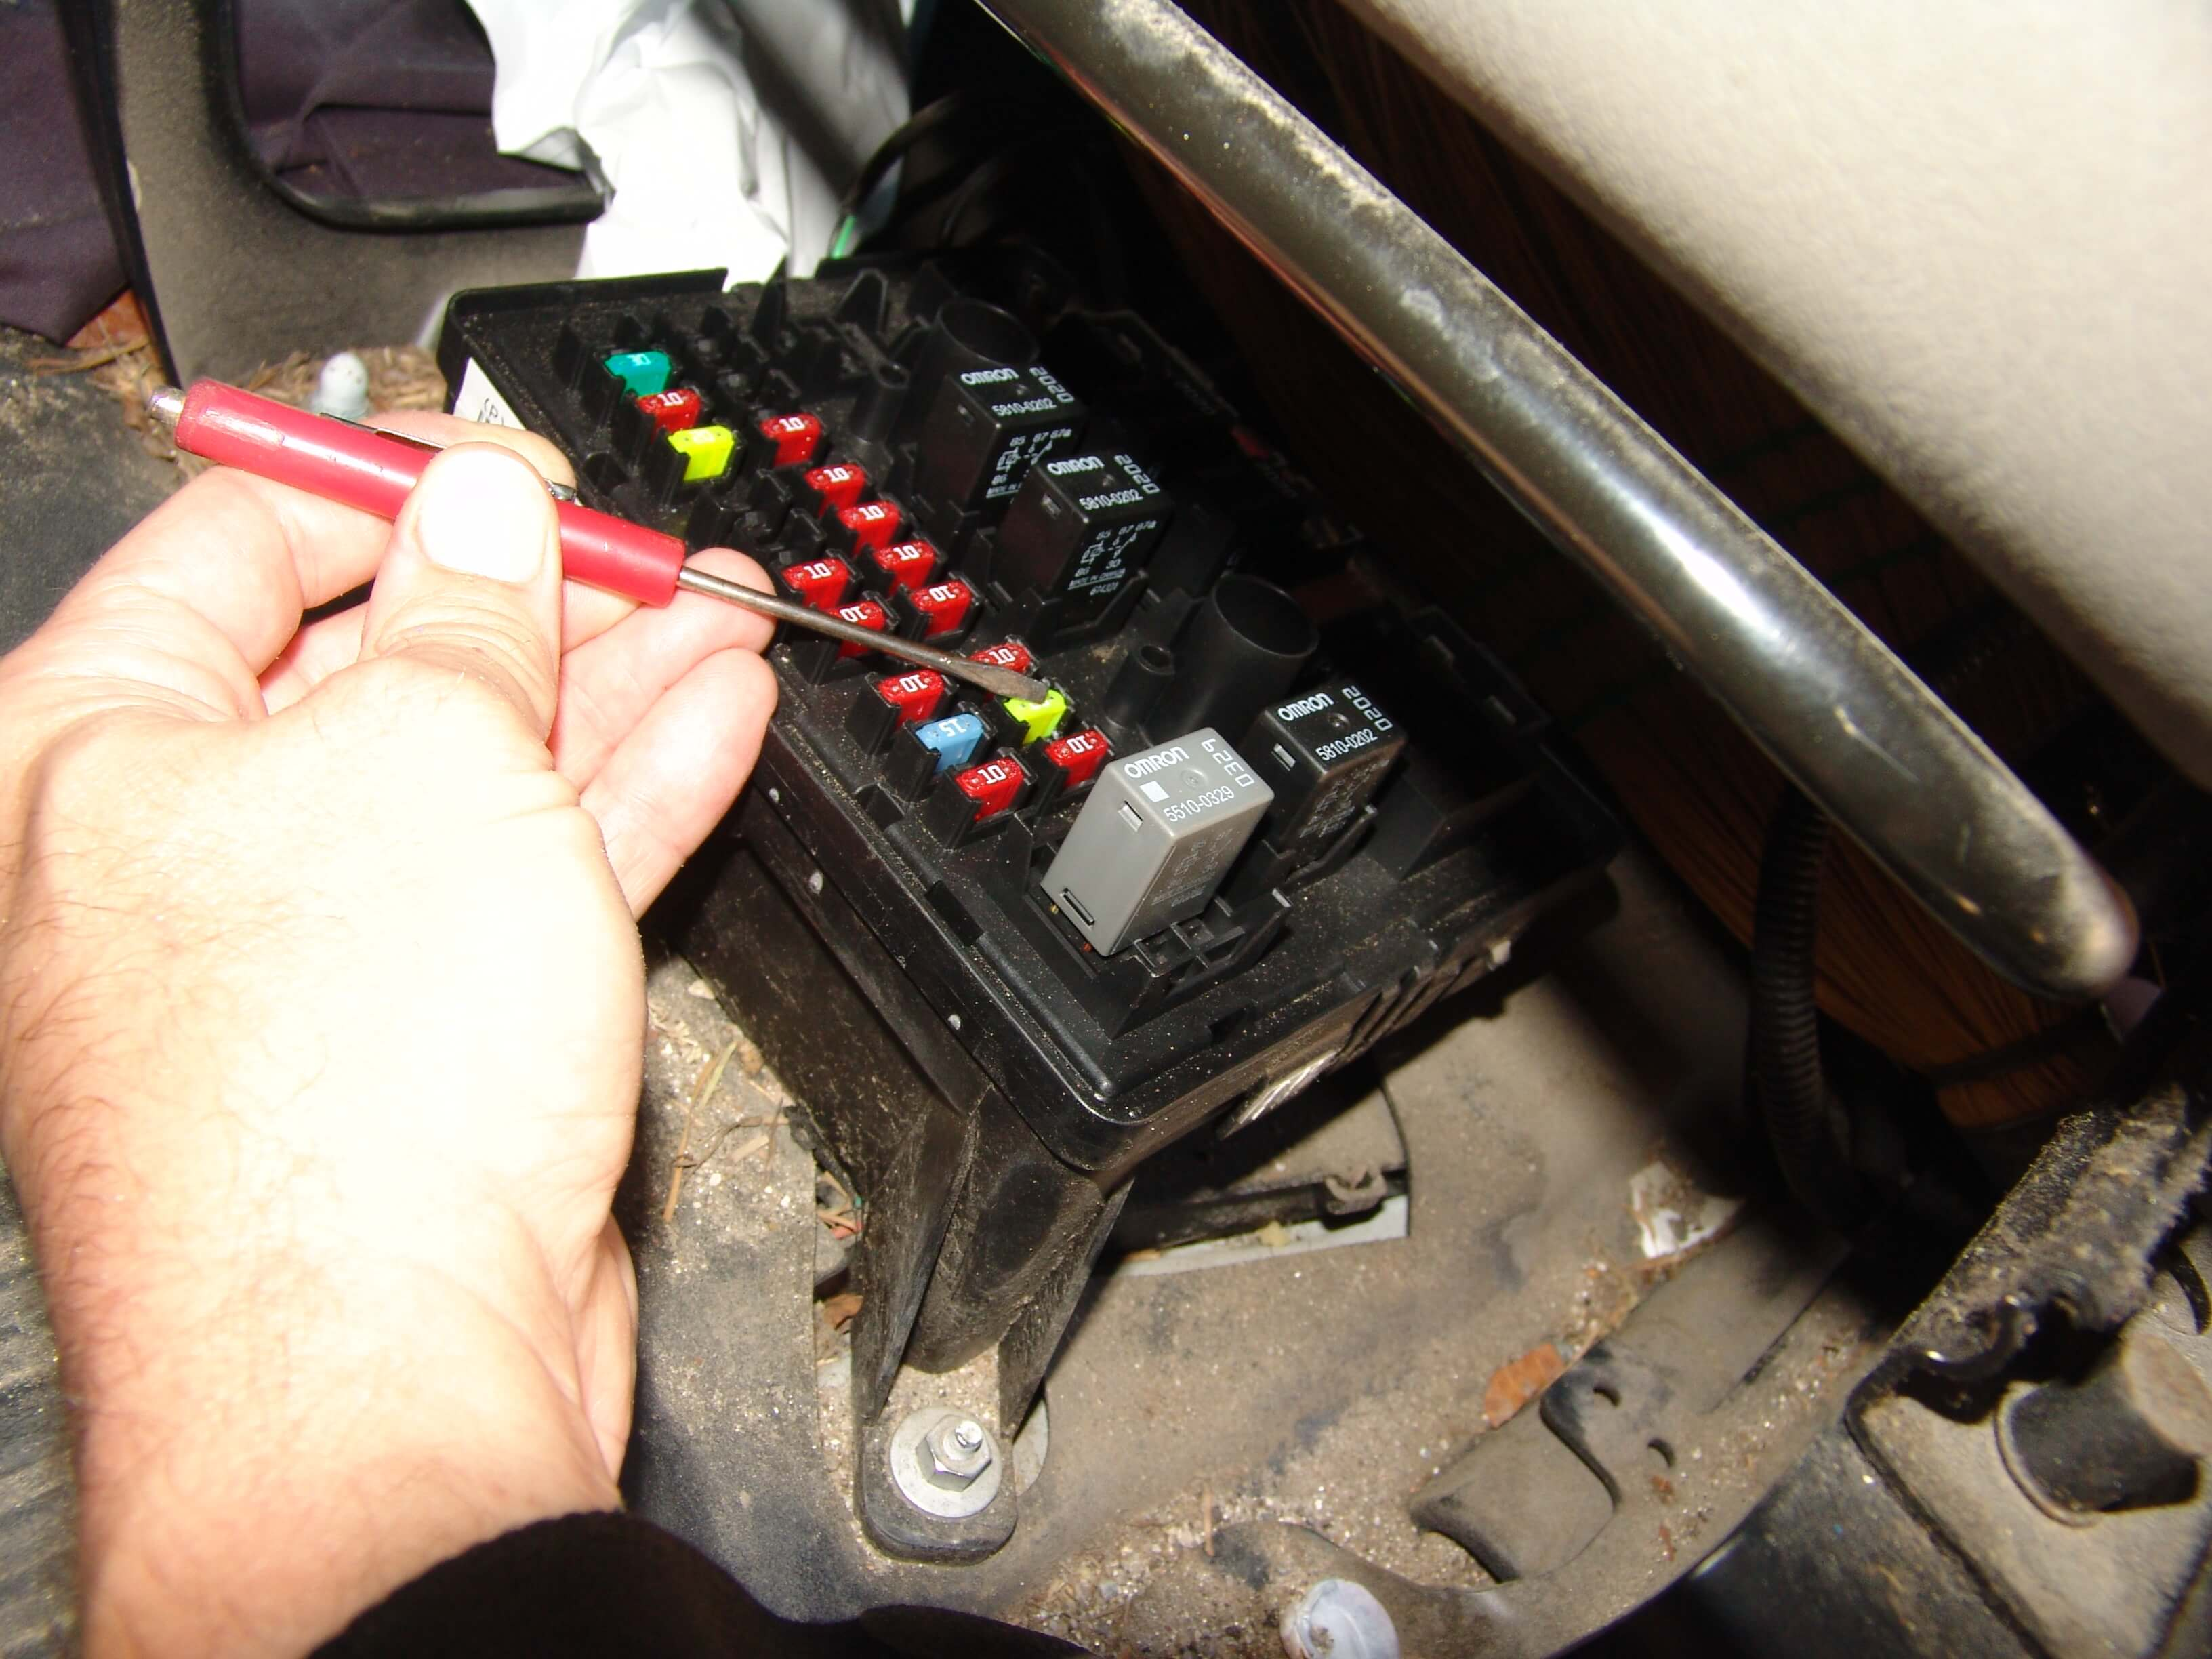 Sparky's Answers - 2007 Chevy Express G1500 Van, Fuse #10, HVAC Fuse Blows | Hvac Fuse Box Wiring |  | Sparky's Answers